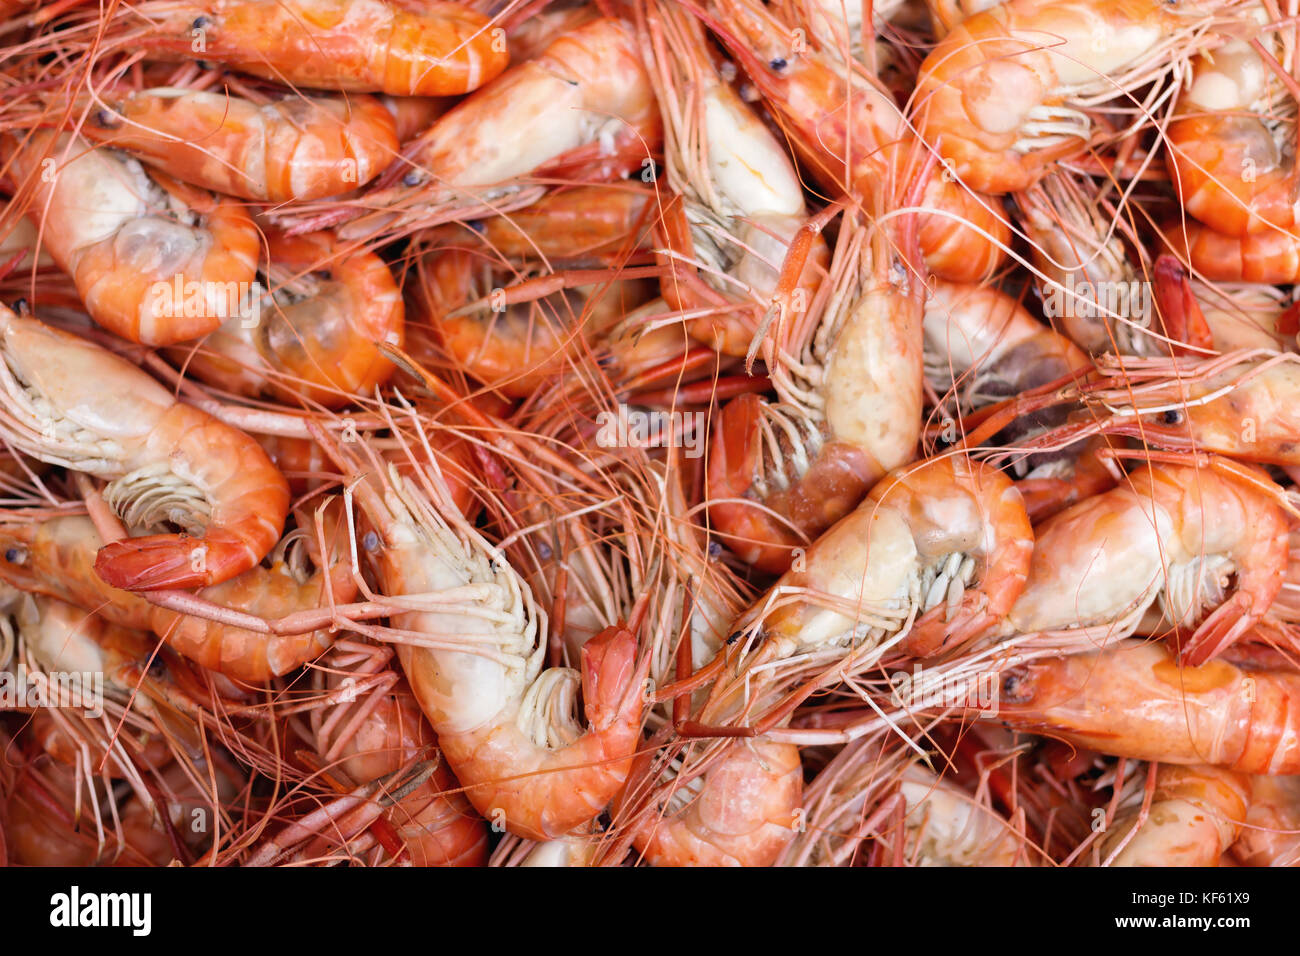 group of boiled giant freshwater prawn ready to eat at the fish market. selective focus. - Stock Image